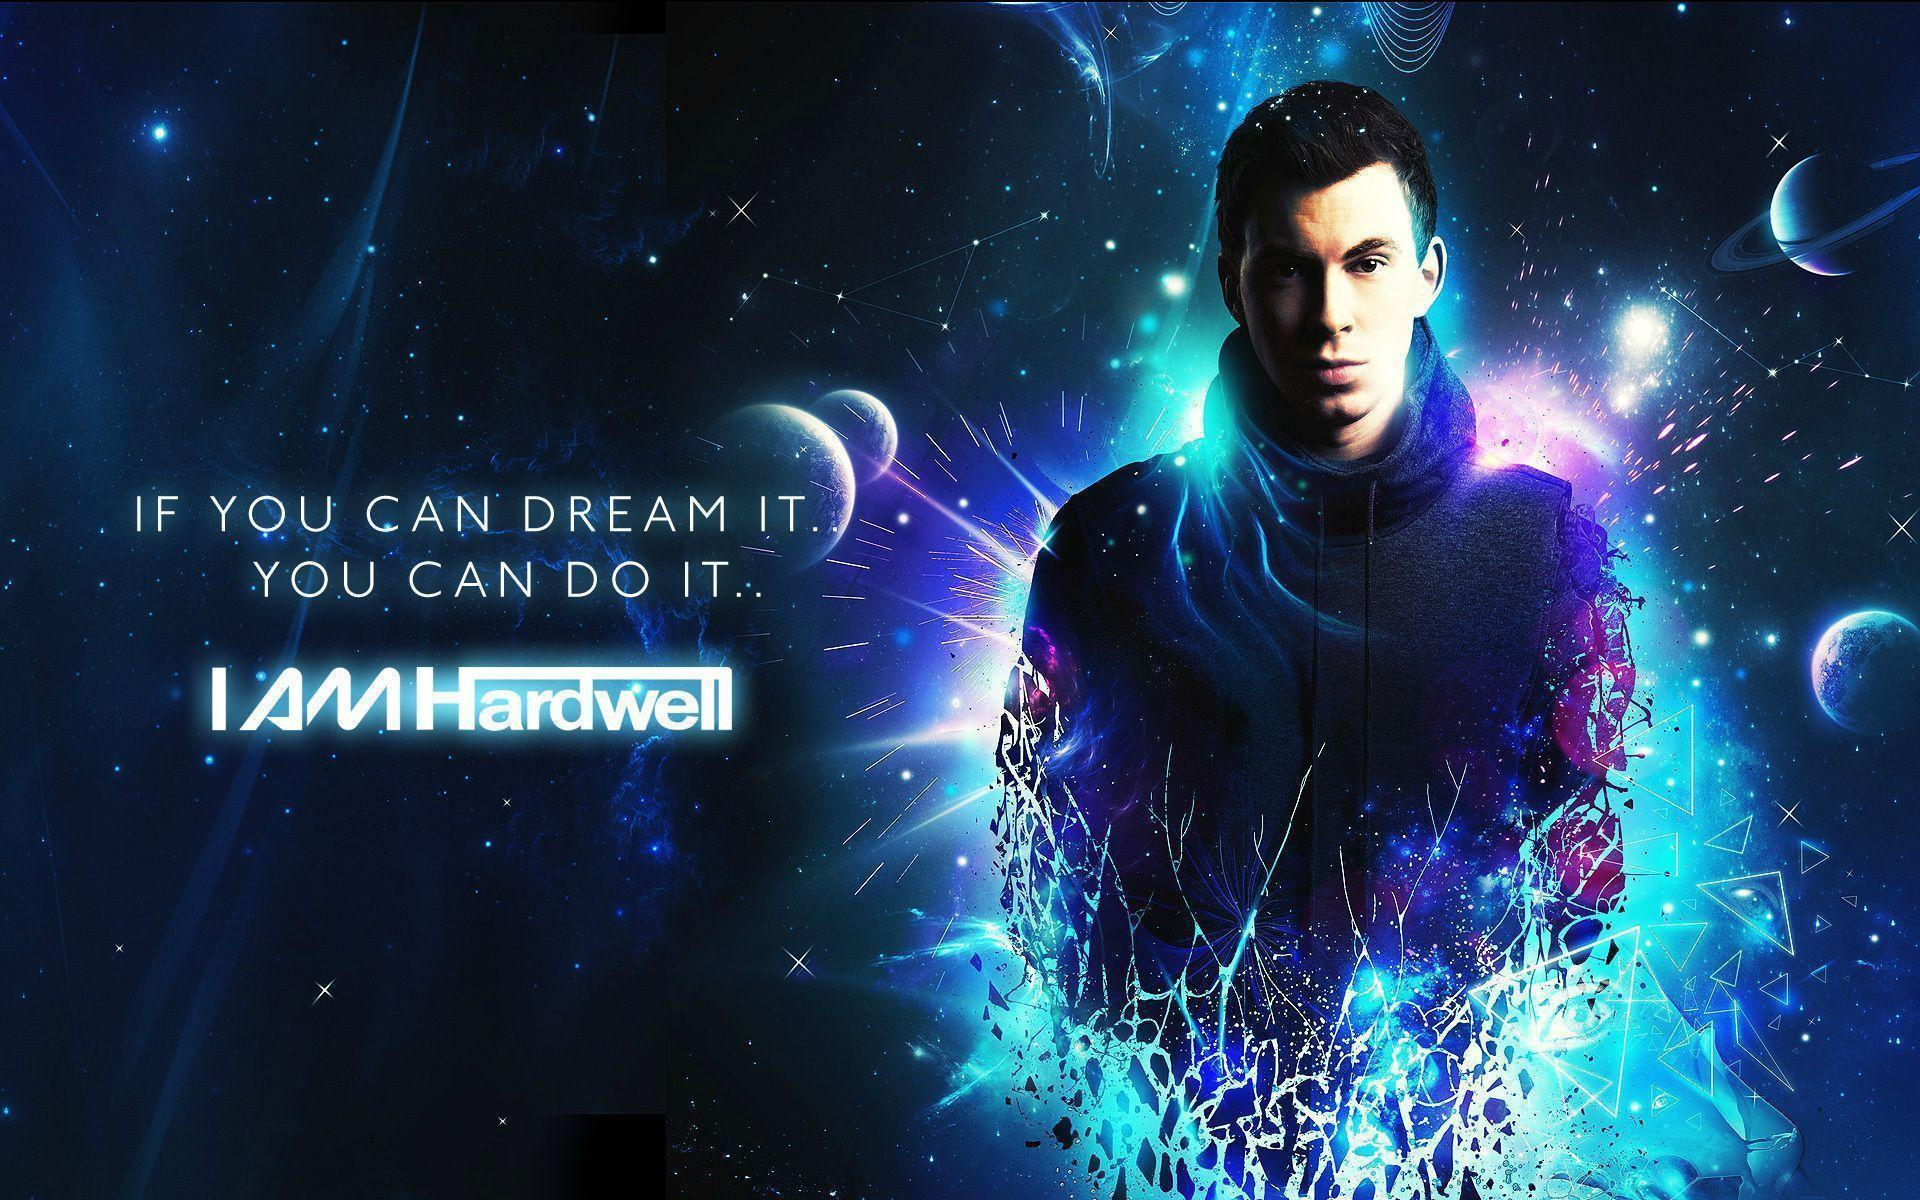 hardwell wallpaper hd - photo #3